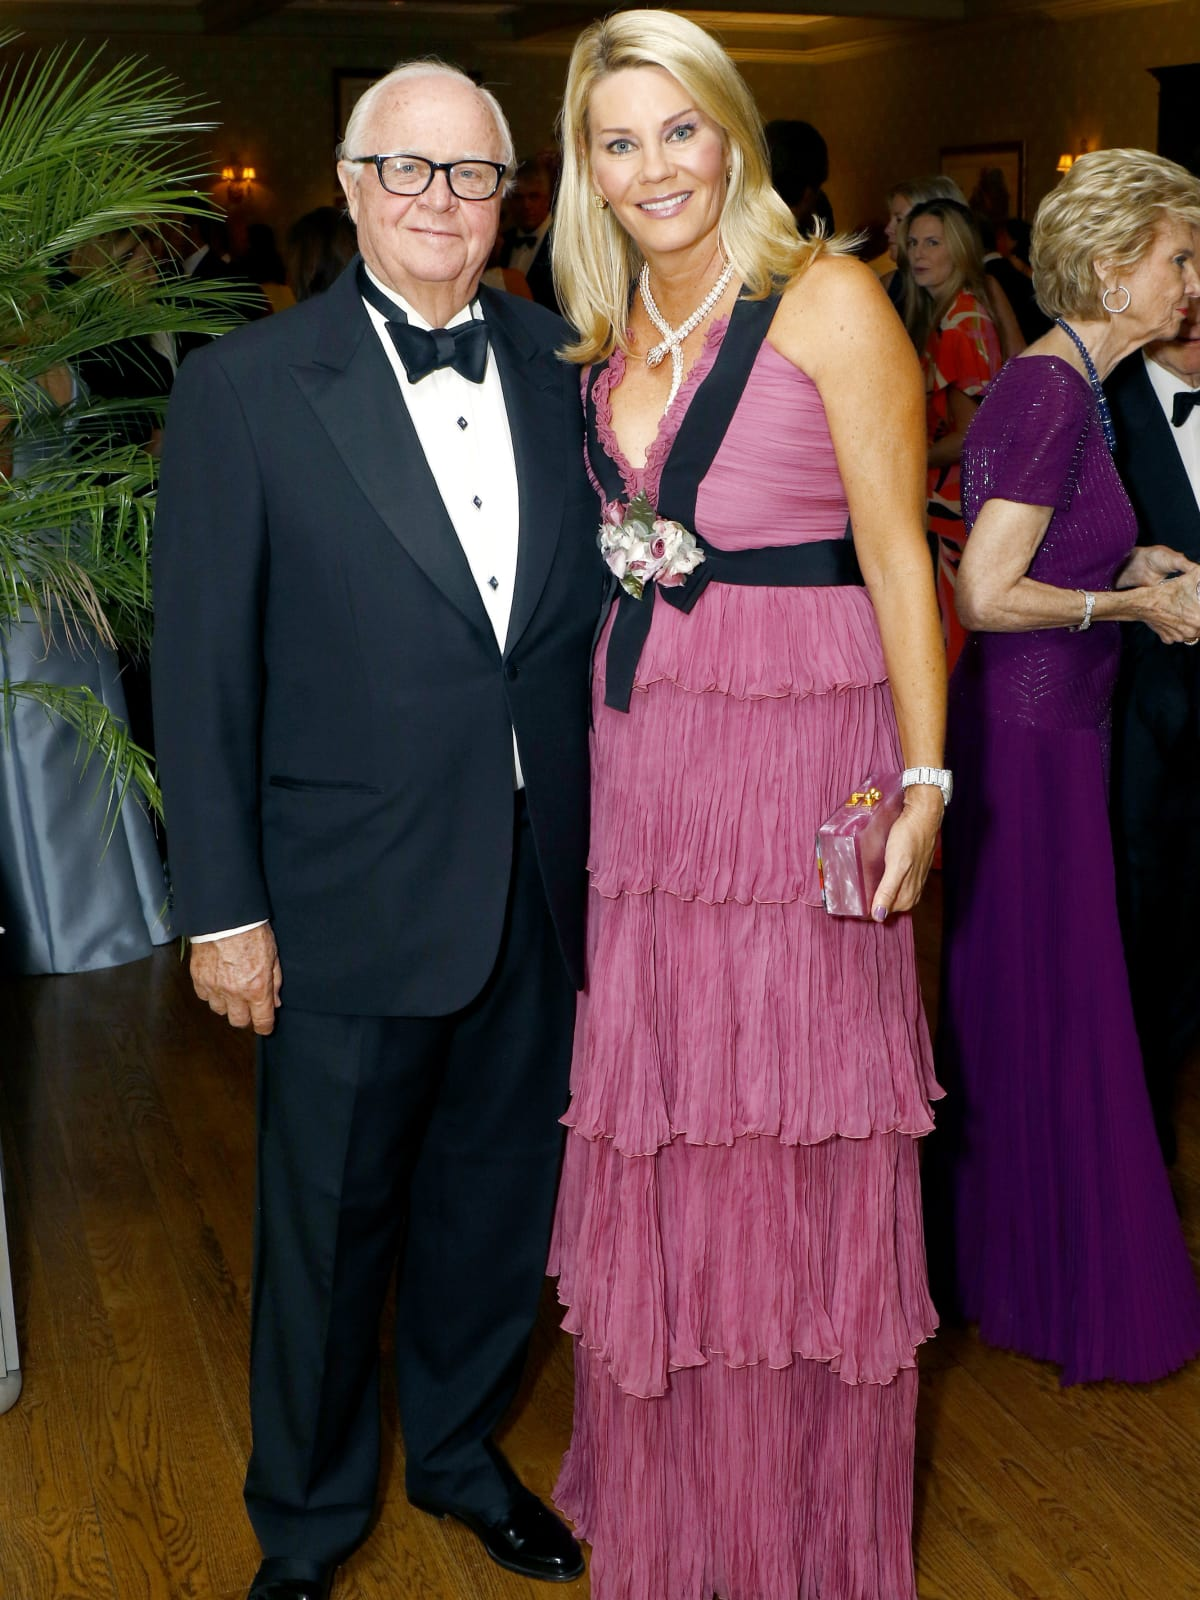 Jerry Ford, Kelli Ford